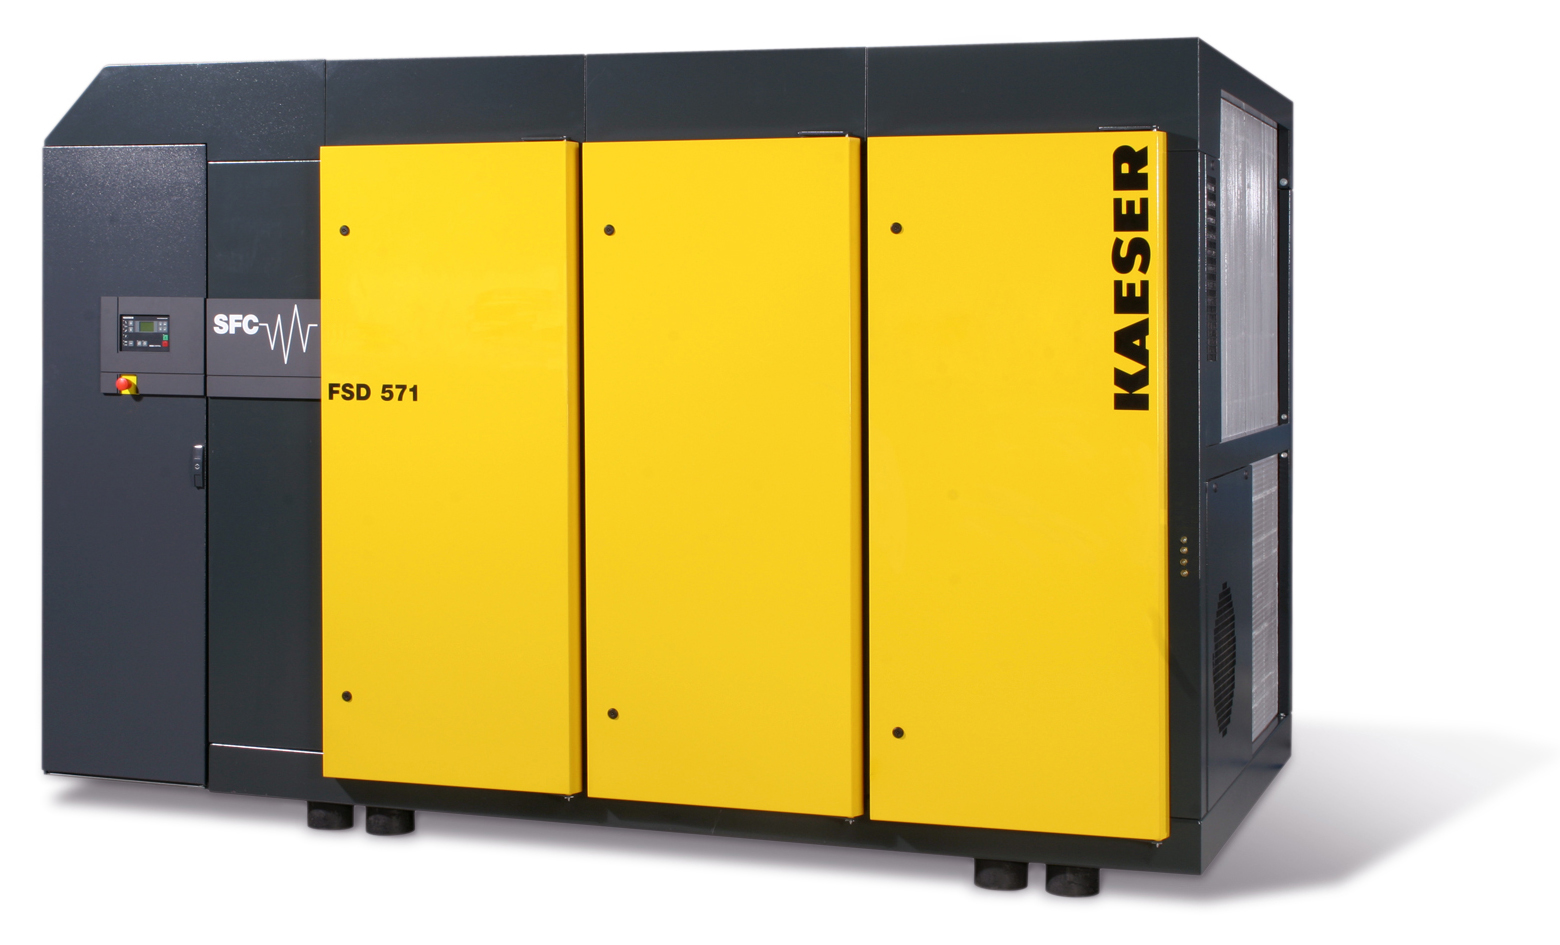 A FSD SFC_17 10232 the variable speed fsd rotary screw compressor from kaeser  at gsmportal.co